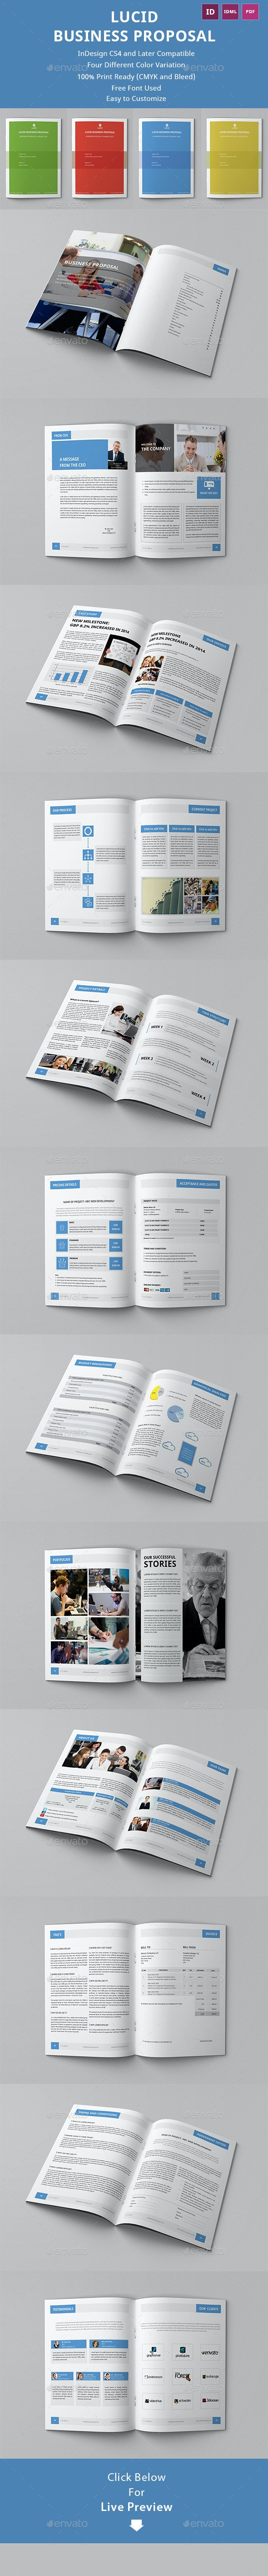 Lucid Business Proposal Template - Proposals & Invoices Stationery